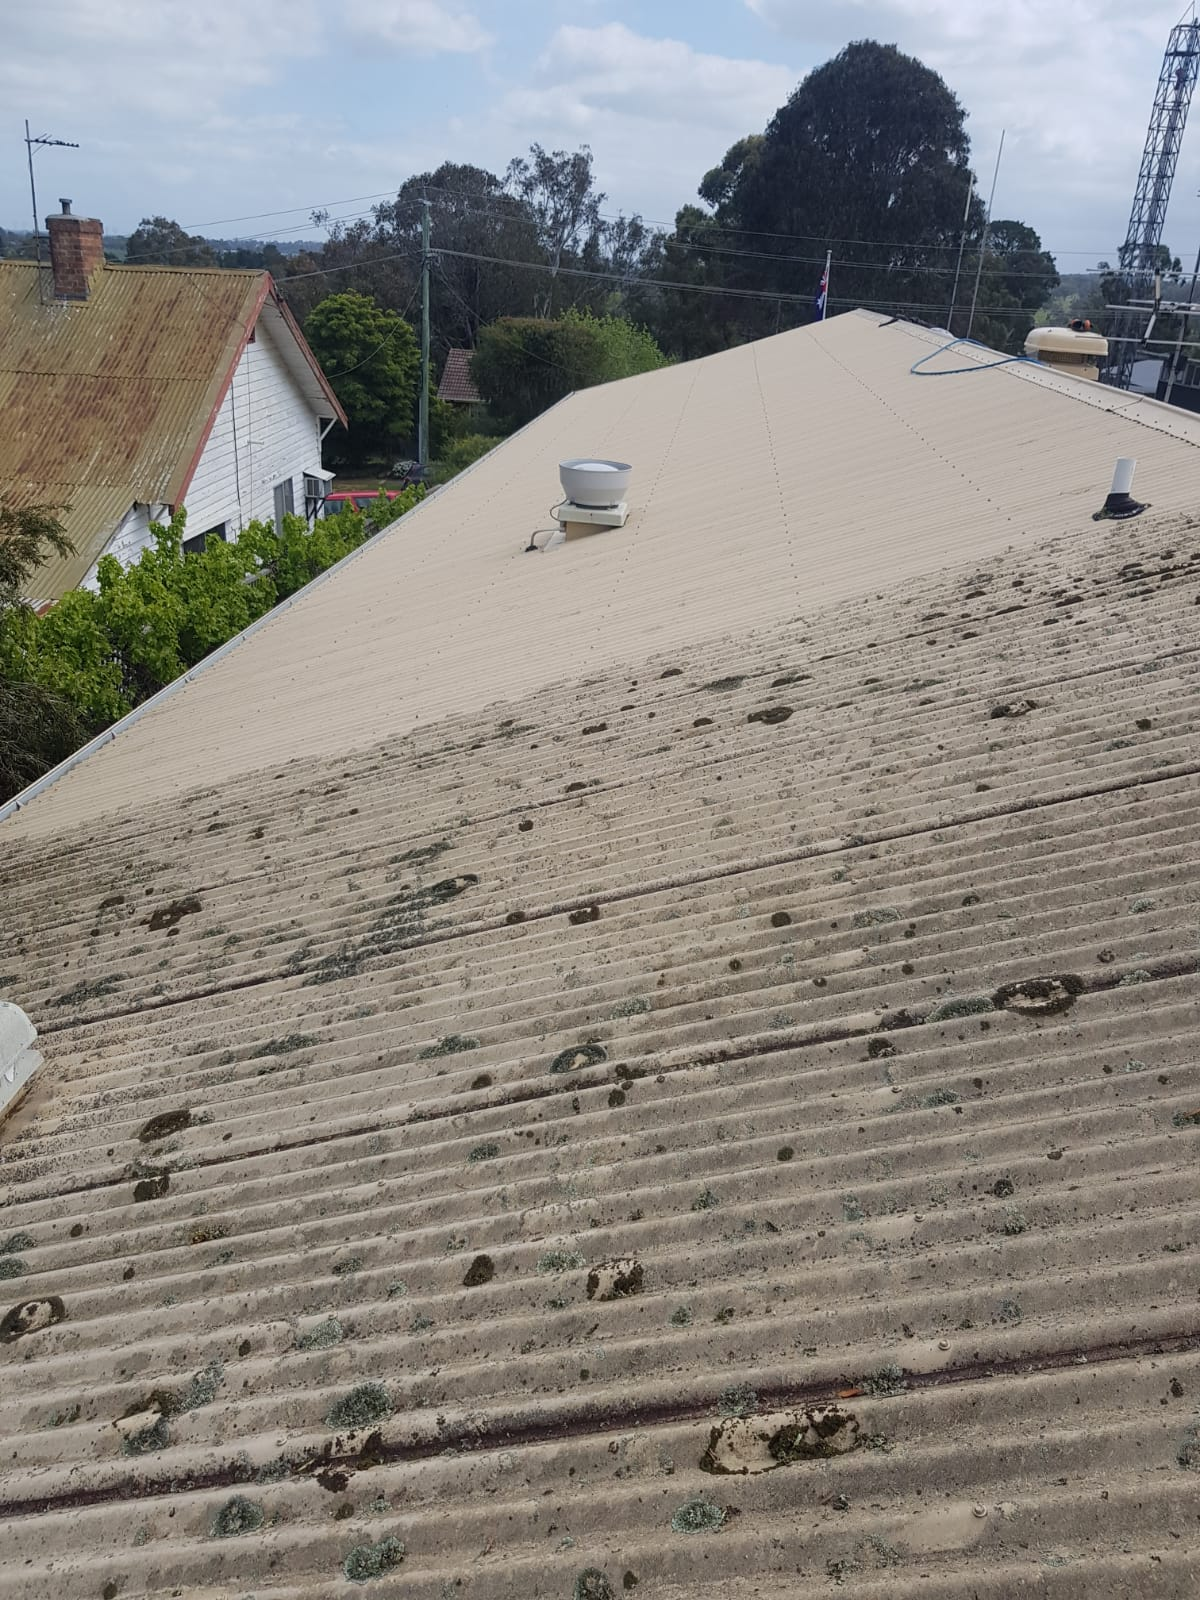 Bunyip police station roof pressure wash cleaning